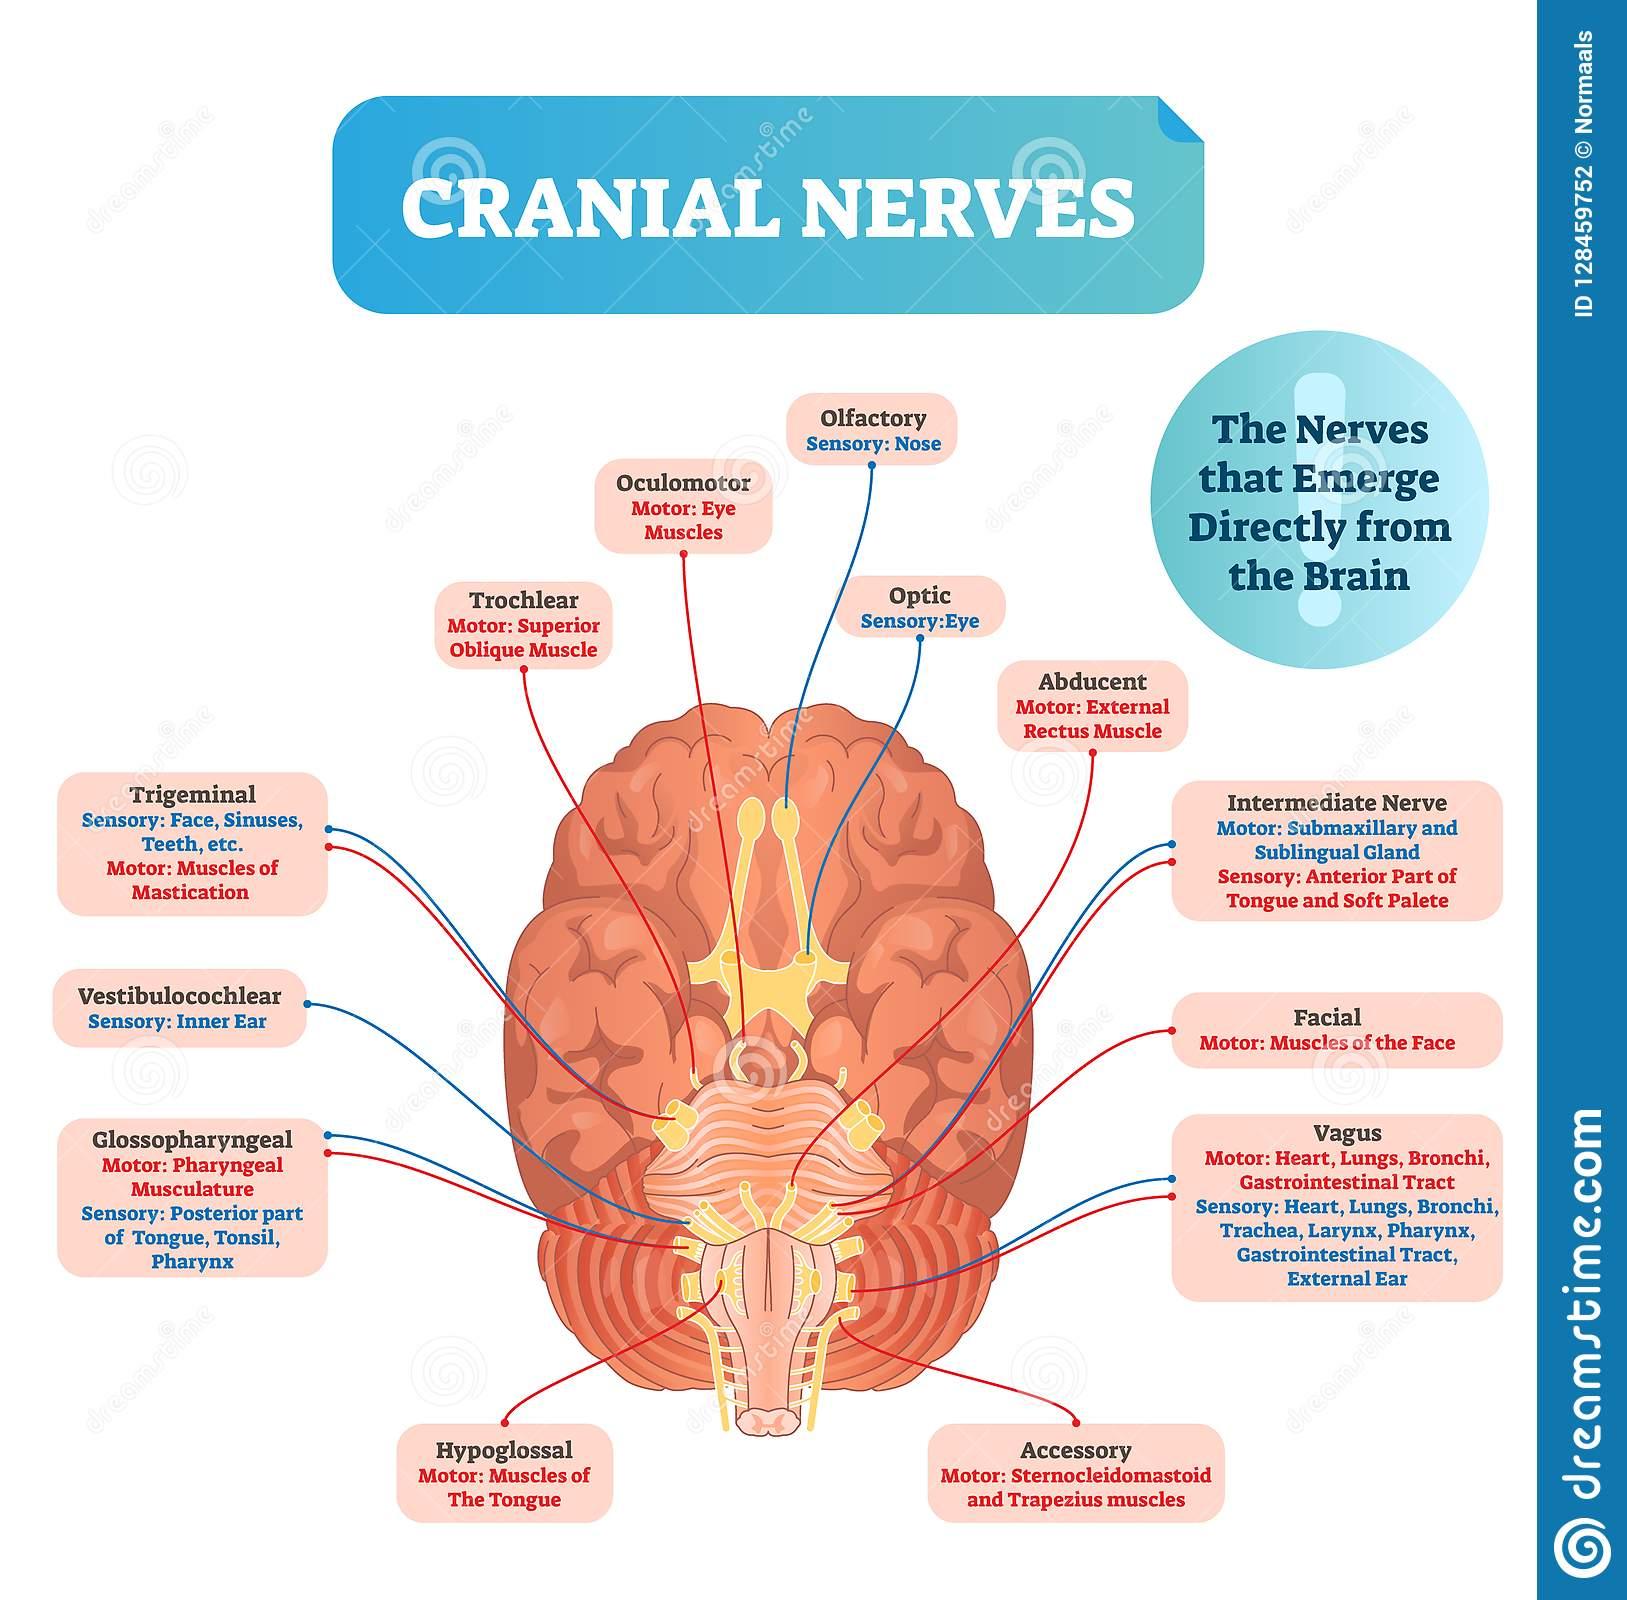 Cranial Nerves Vector Illustration Labeled Diagram With Brain Sections Stock Vector